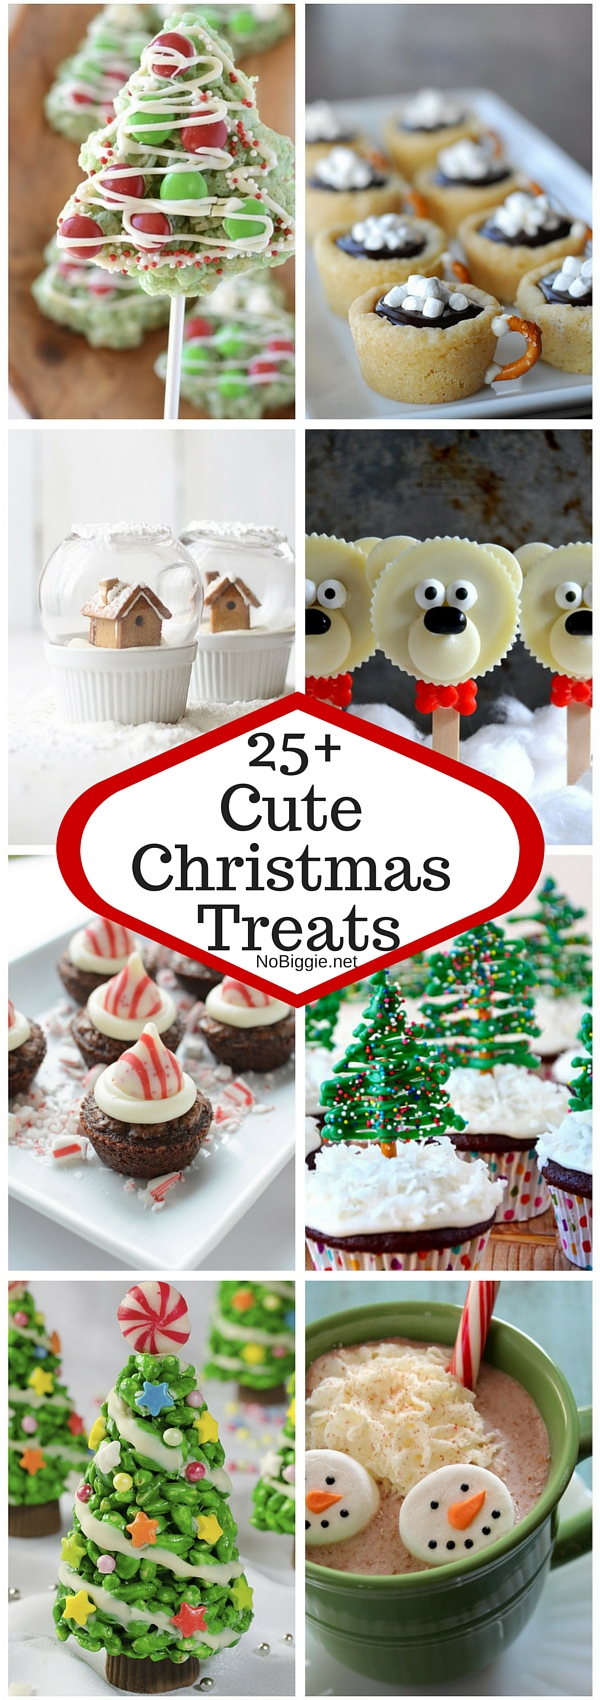 25 cute christmas treats nobiggie for Christmas cookies to make for gifts